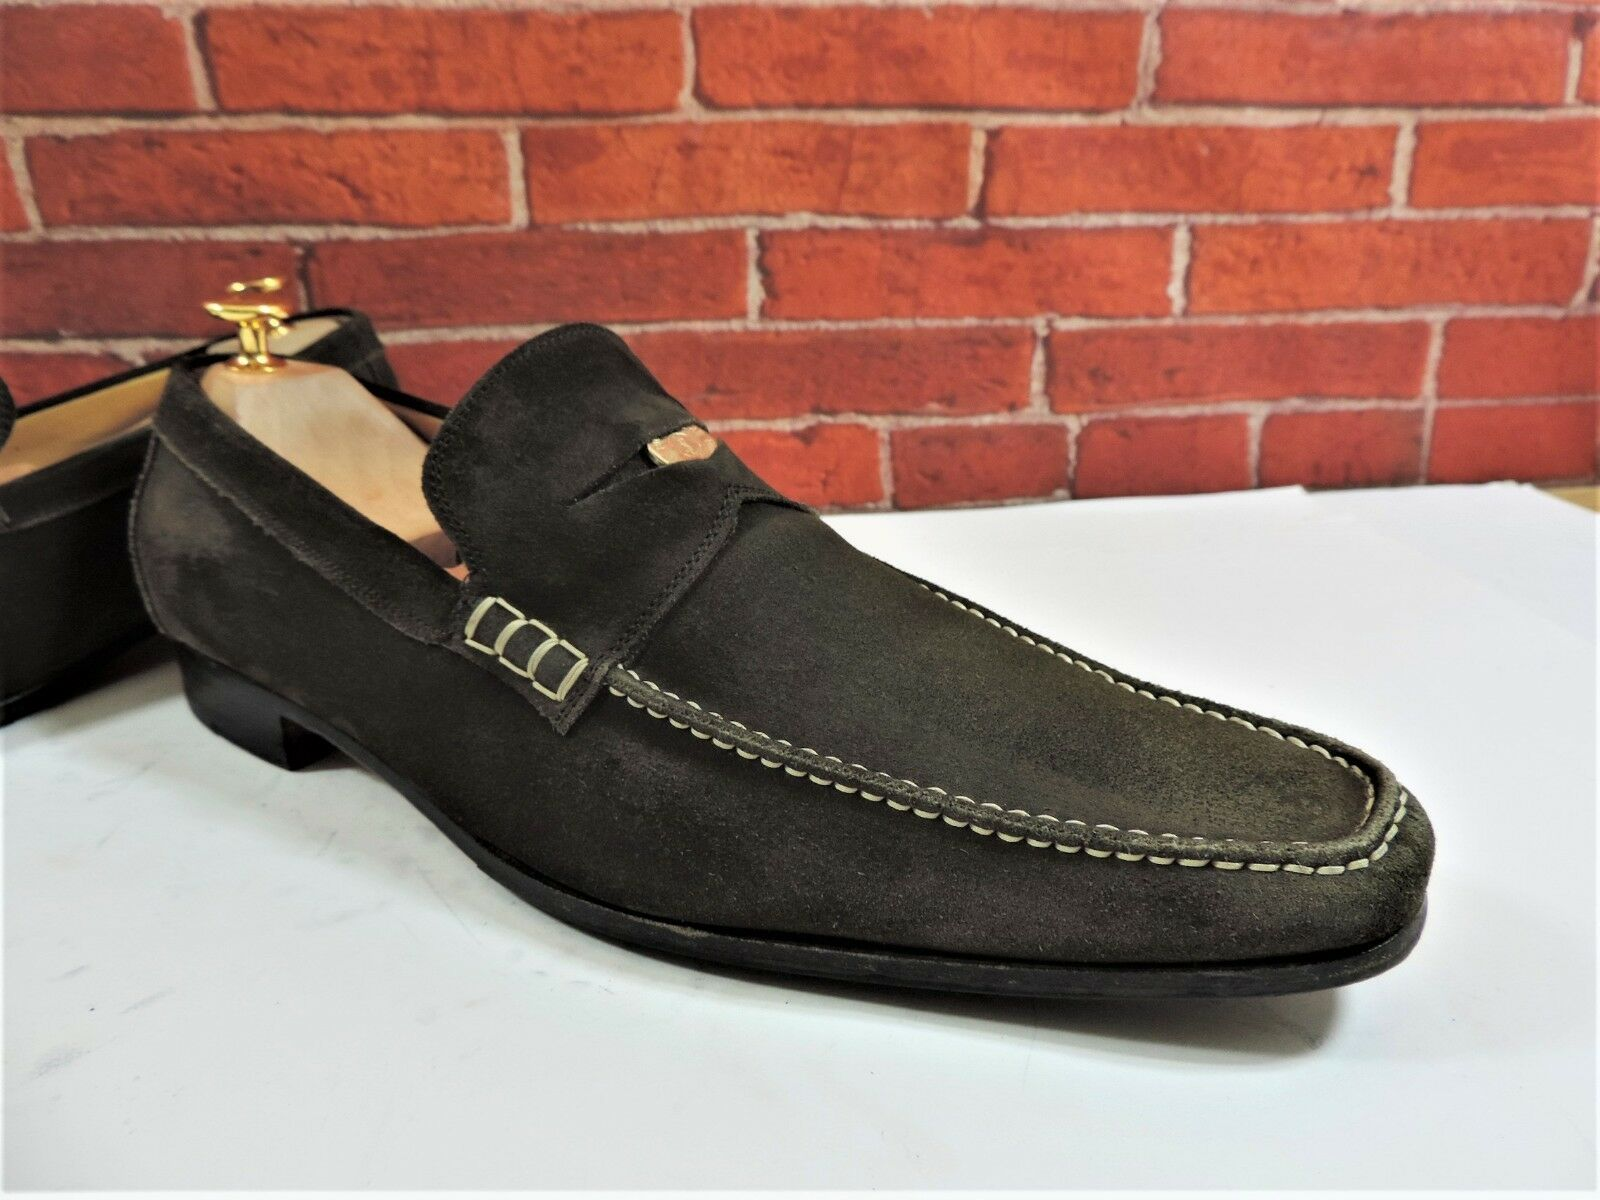 Yves Saint Laurent 9.5 Suede Penny Loafers UK 9.5 Laurent US 10.5 EU 43.5 Worn 2/3 times 7a7fff